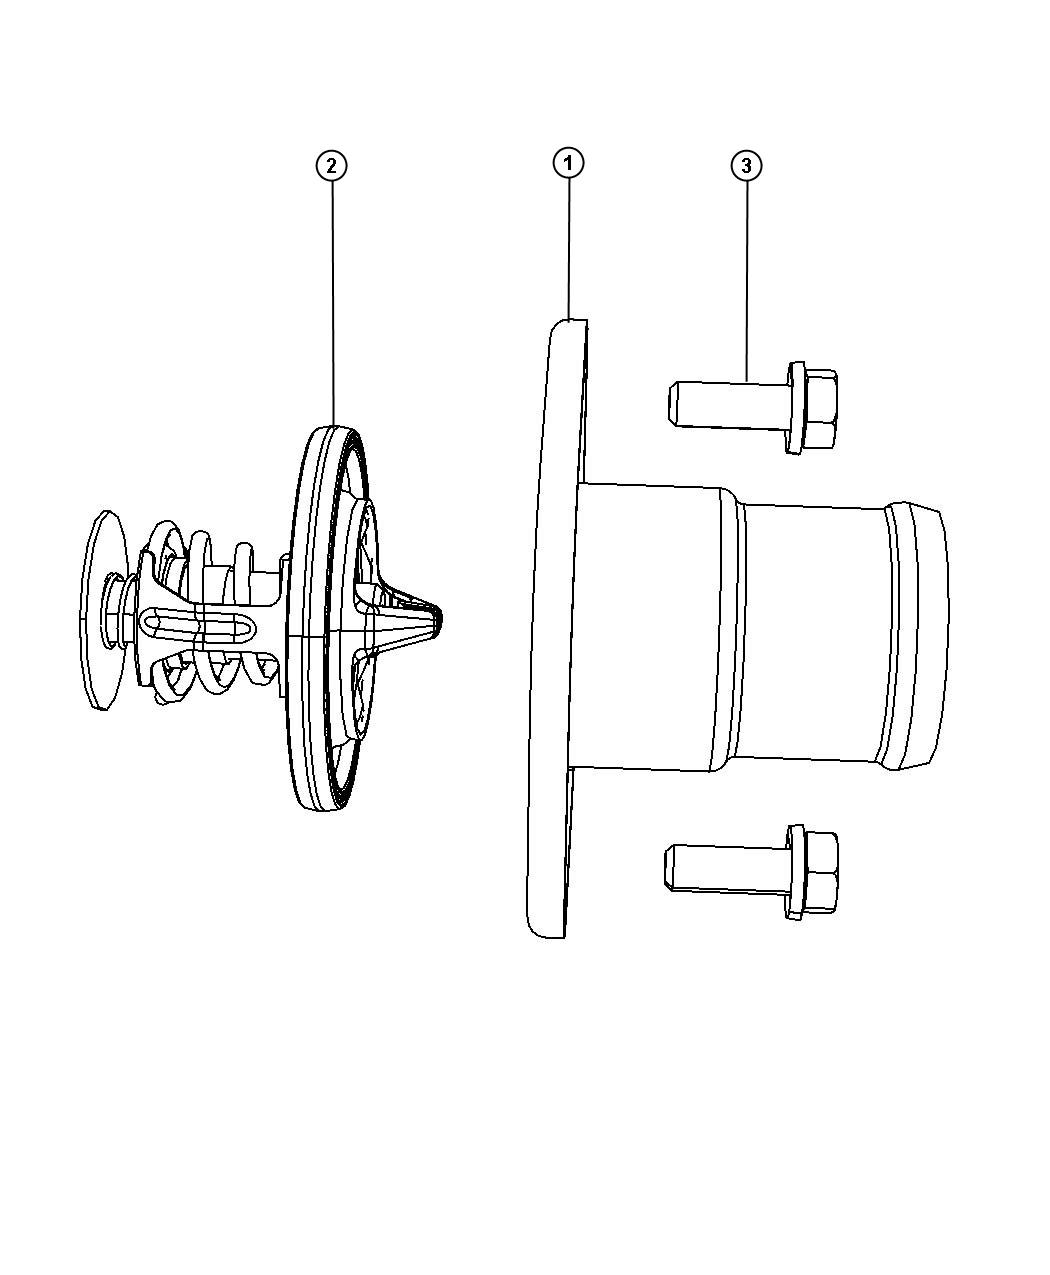 Dodge Ram Screw Used For Screw And Washer Hex Hex